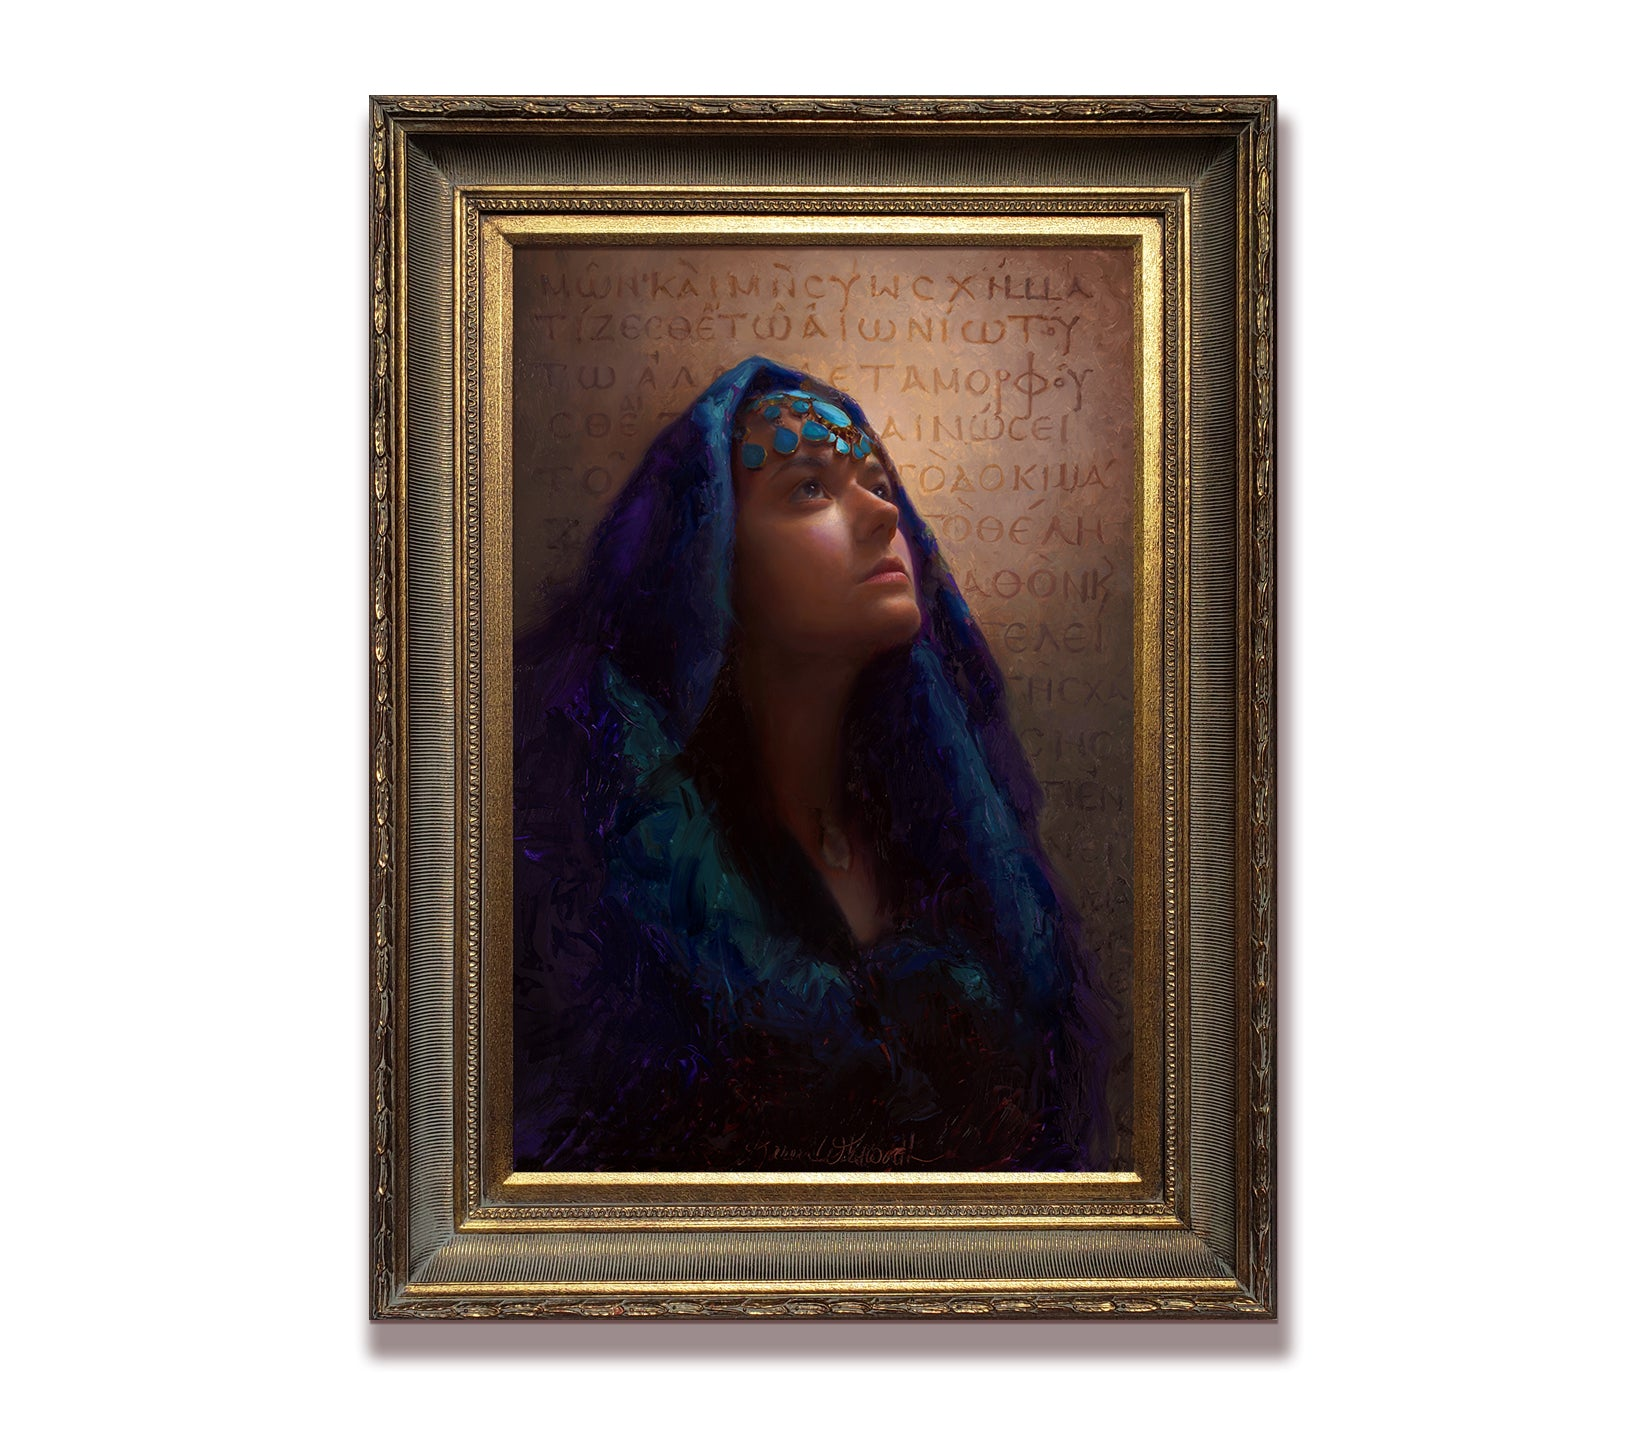 Custom Portrait Painting by Popular Portrait Artist Karen Whitworth - Portrait of woman and Greek Bible Scripture Codex